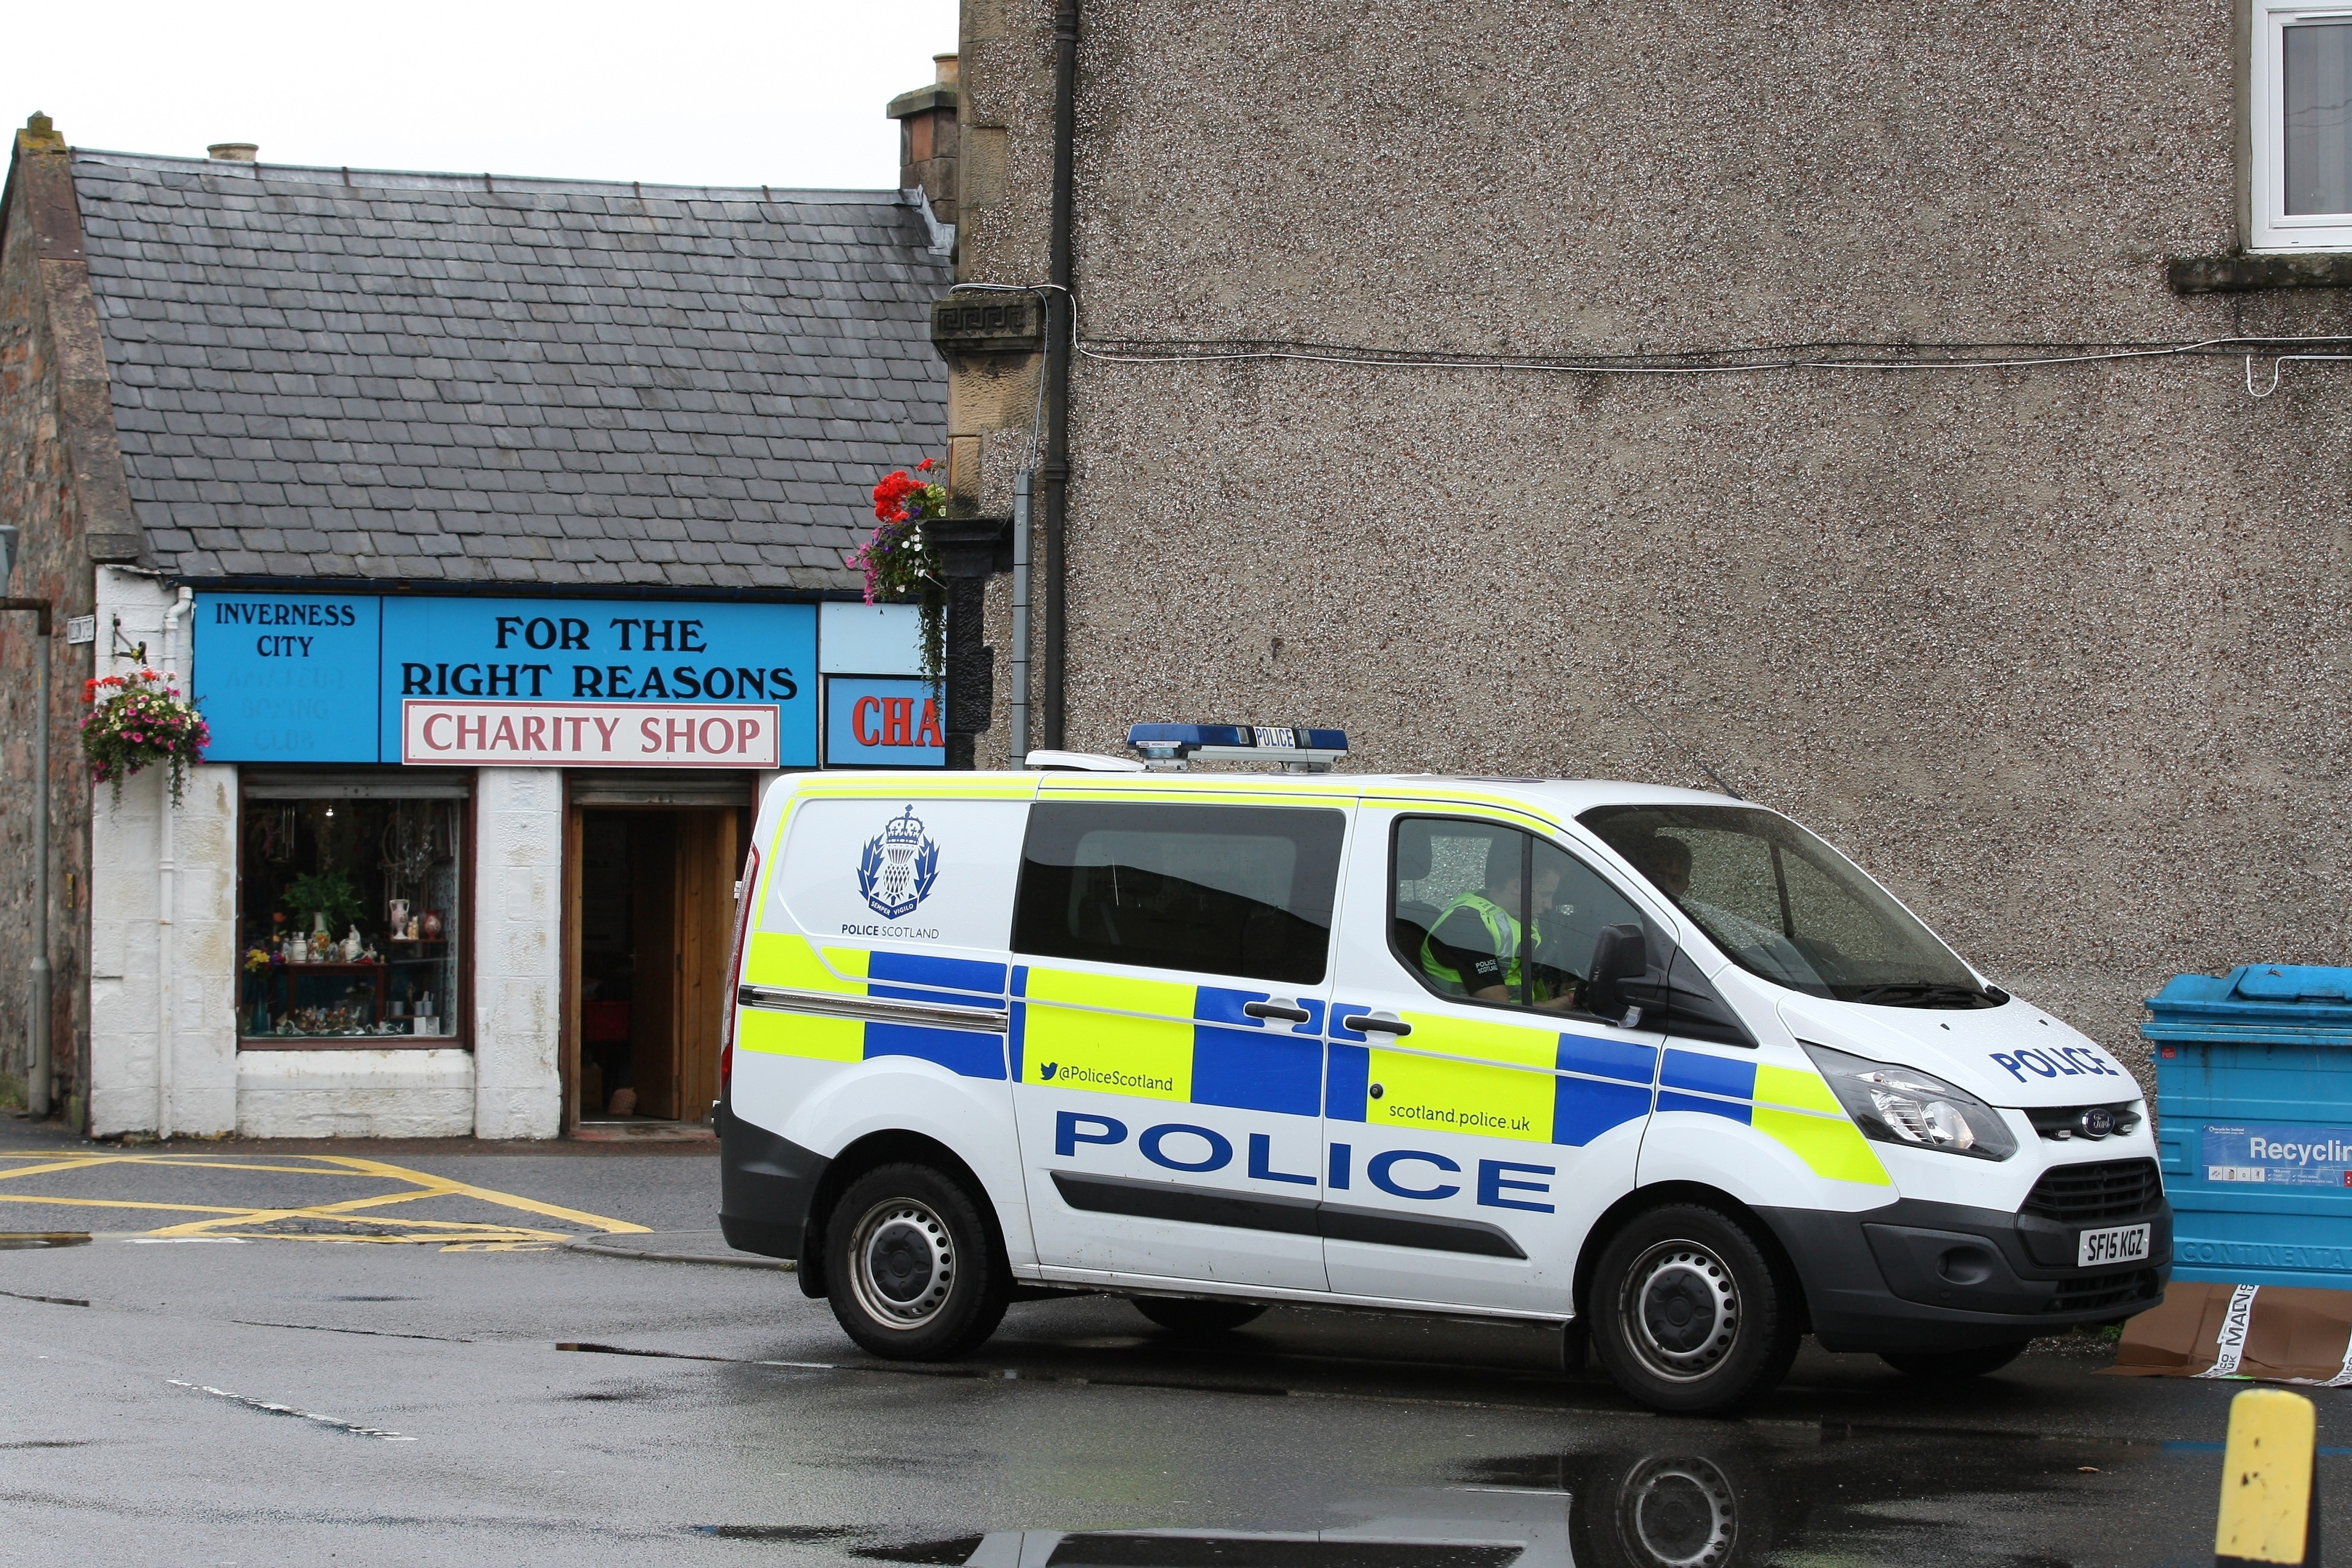 A female pedestrian was struck by a vehicle on the Grant Street pedestrian crossing in Inverness.